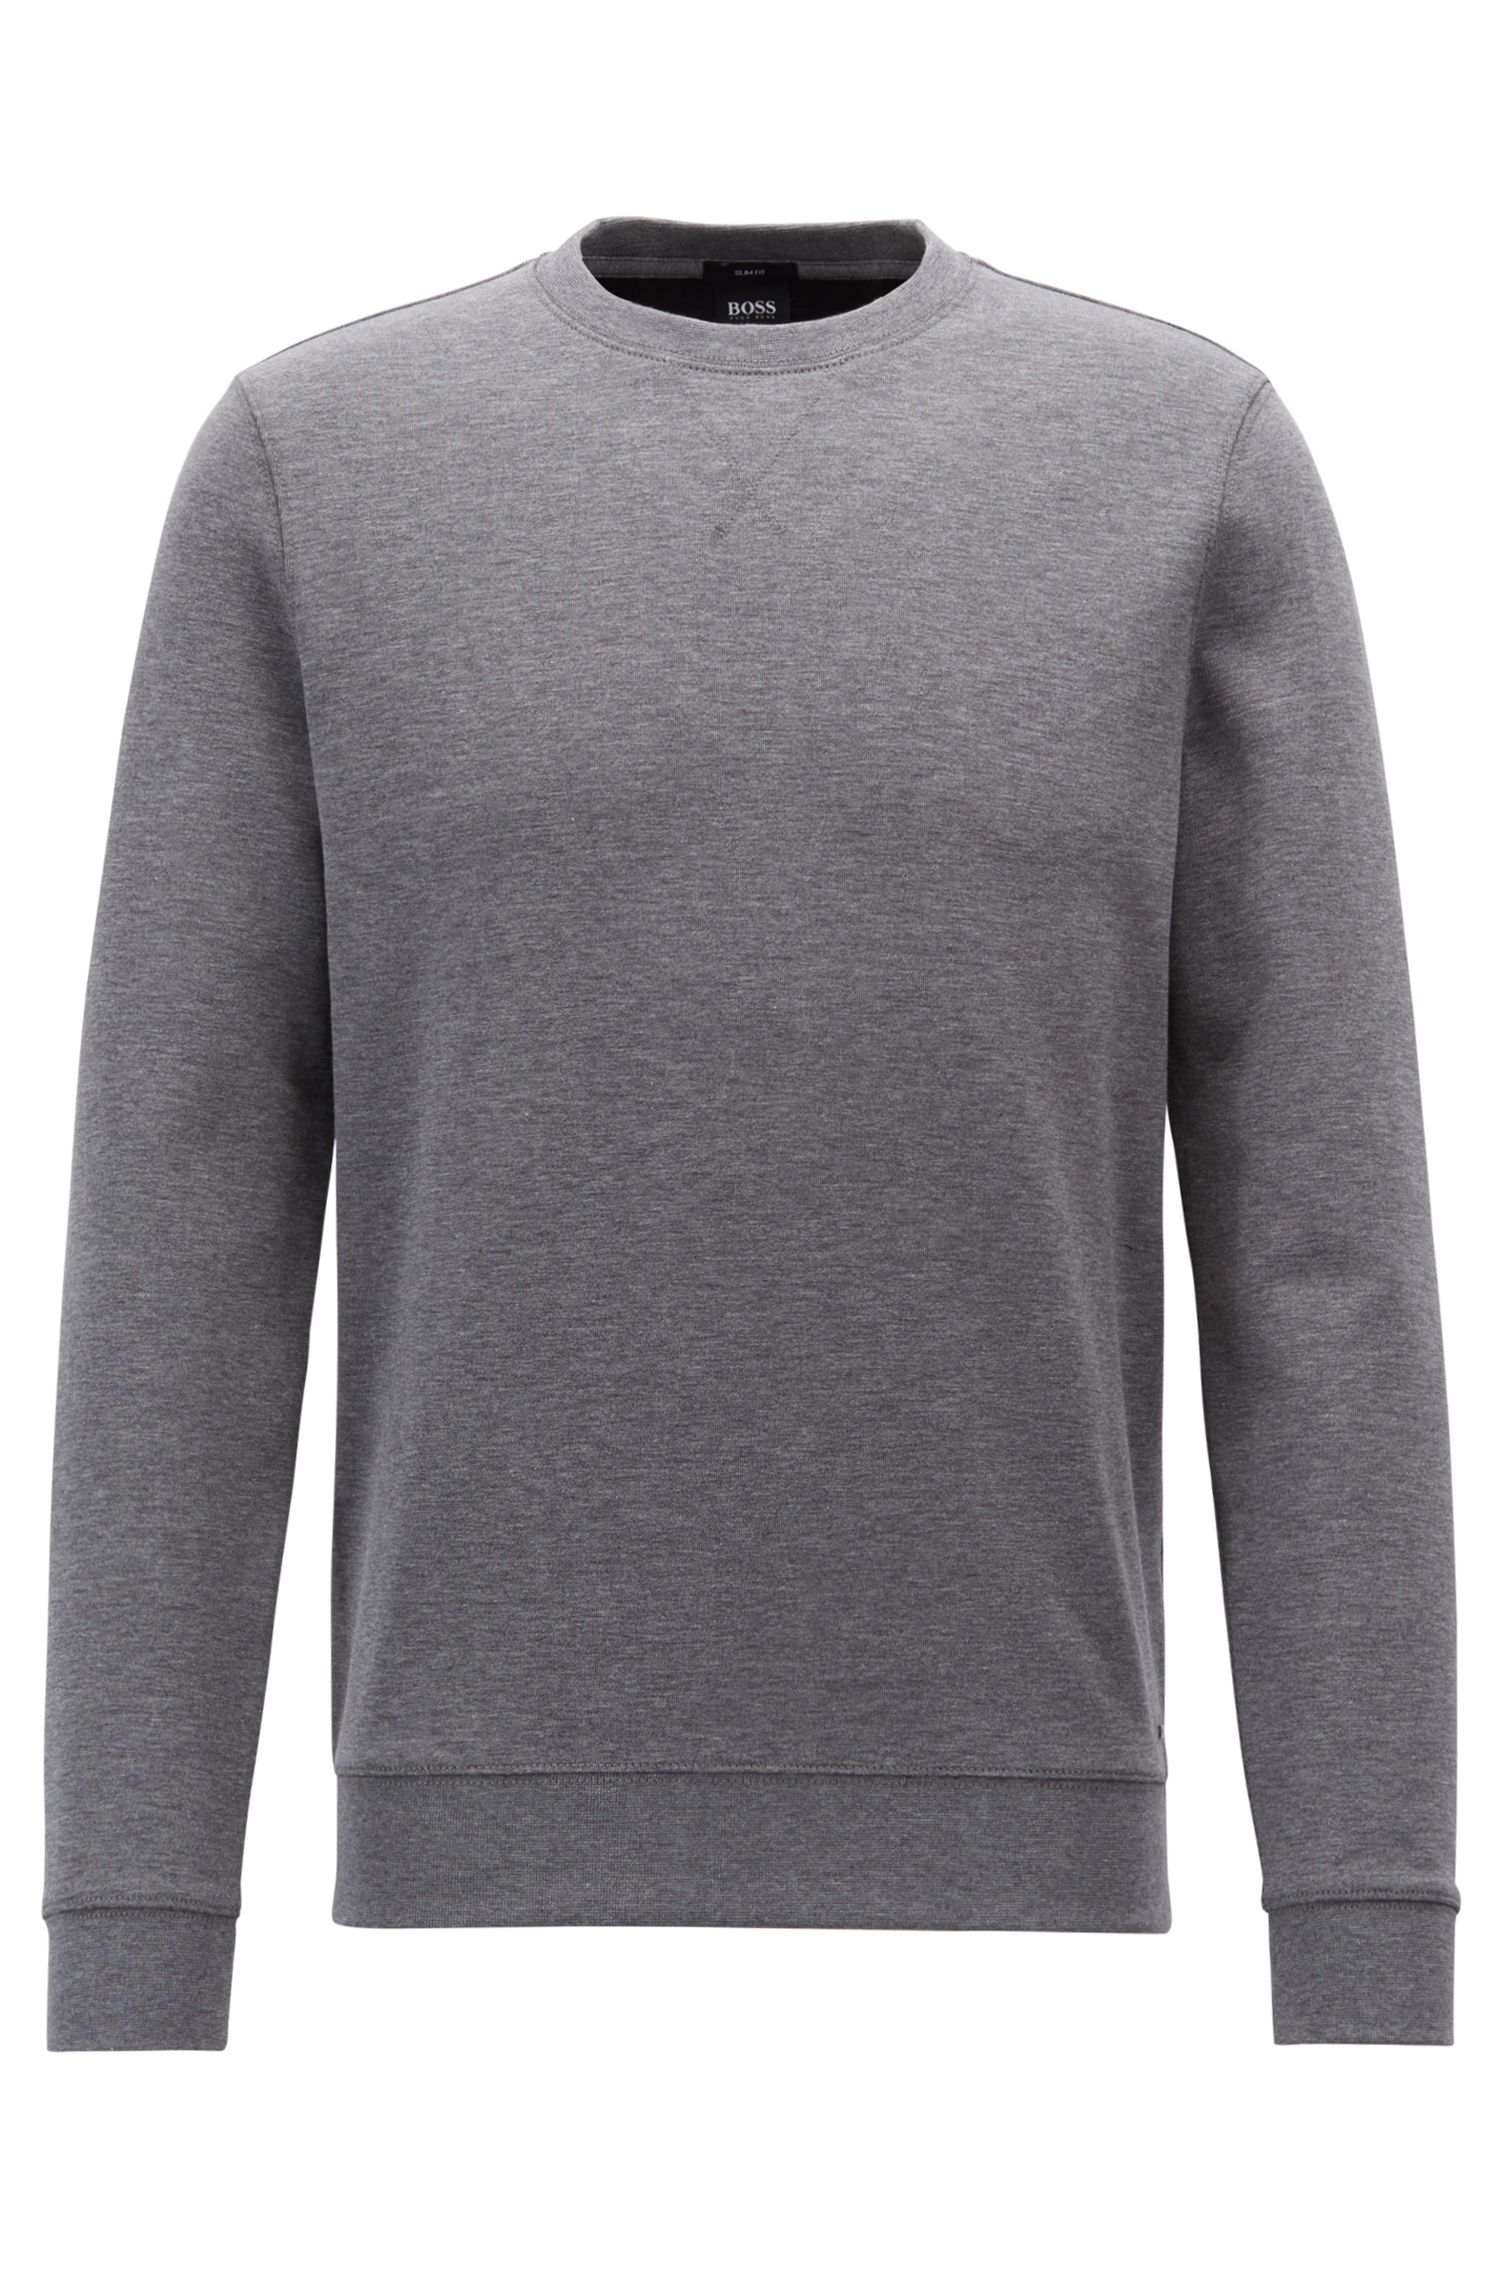 Sweat Slim Fit en coton mélangé double face, Gris